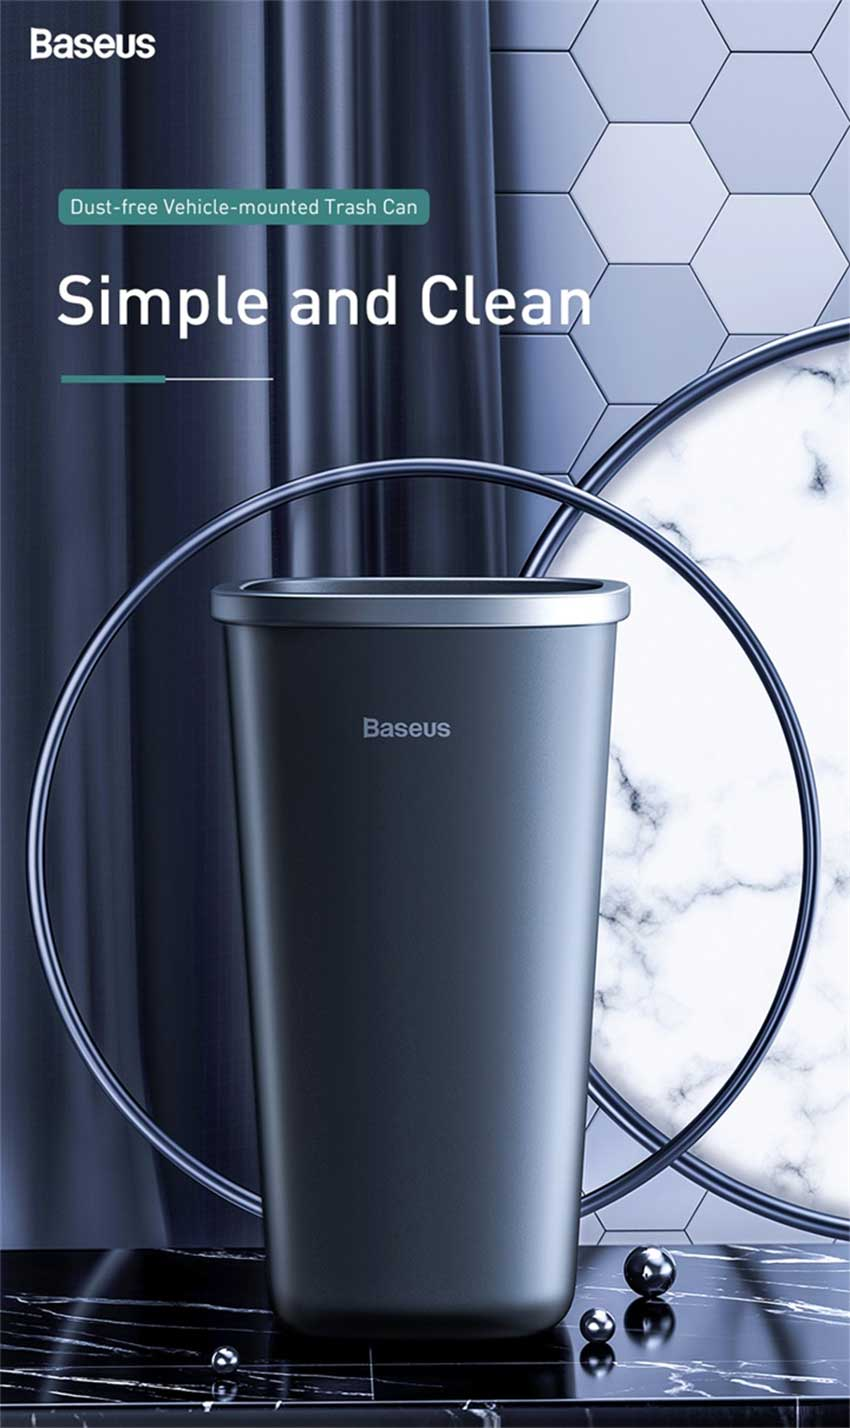 Baseus-Dust-Free-Trash-Can-800ml_5.jpg?1